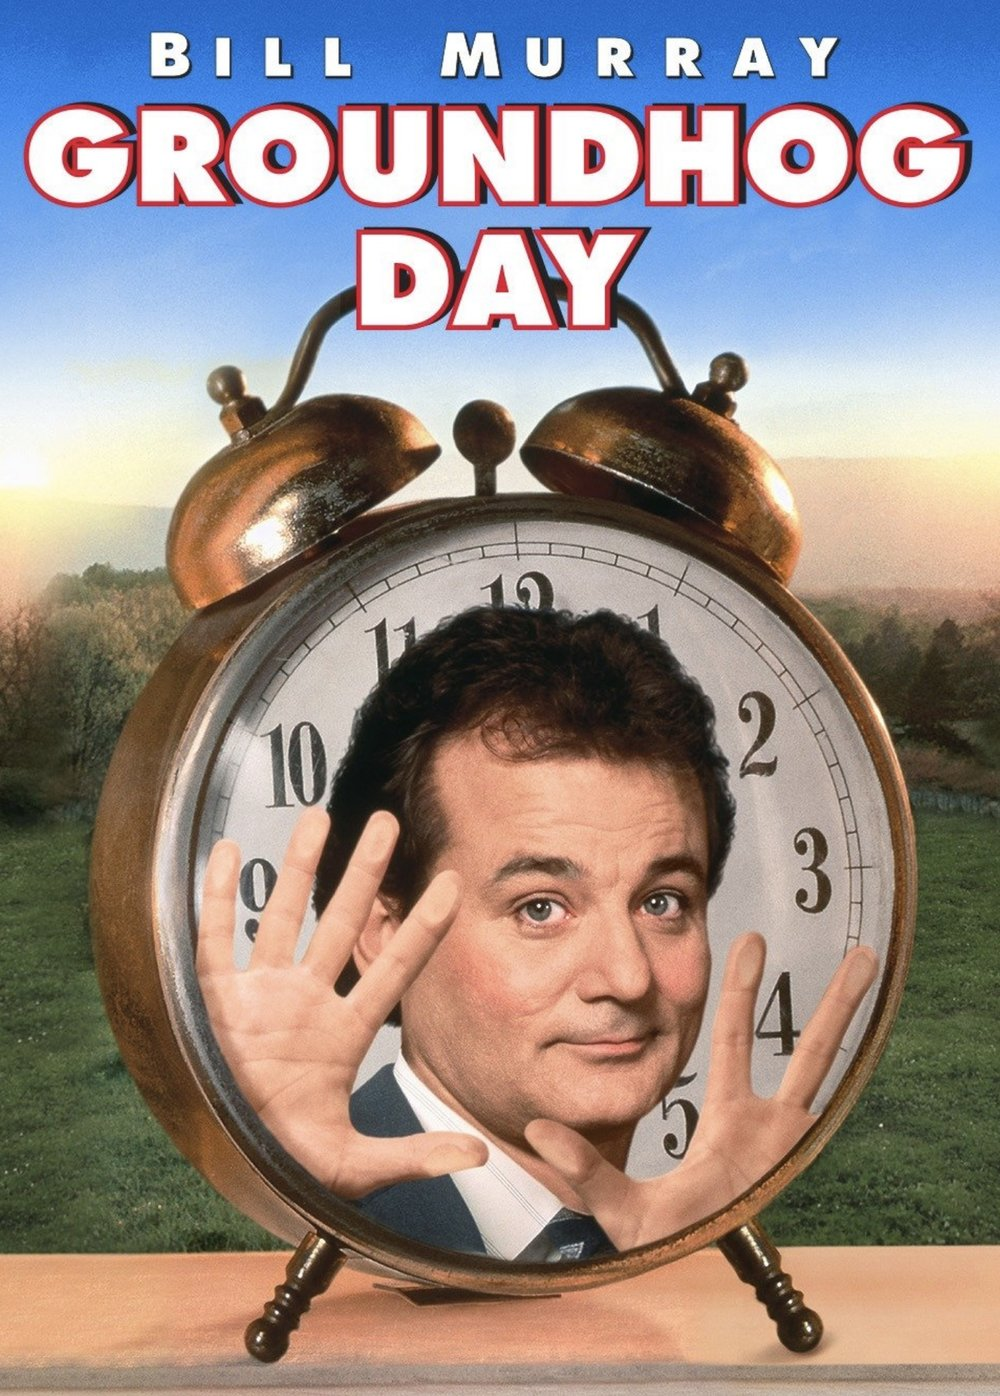 groundhog day.jpg